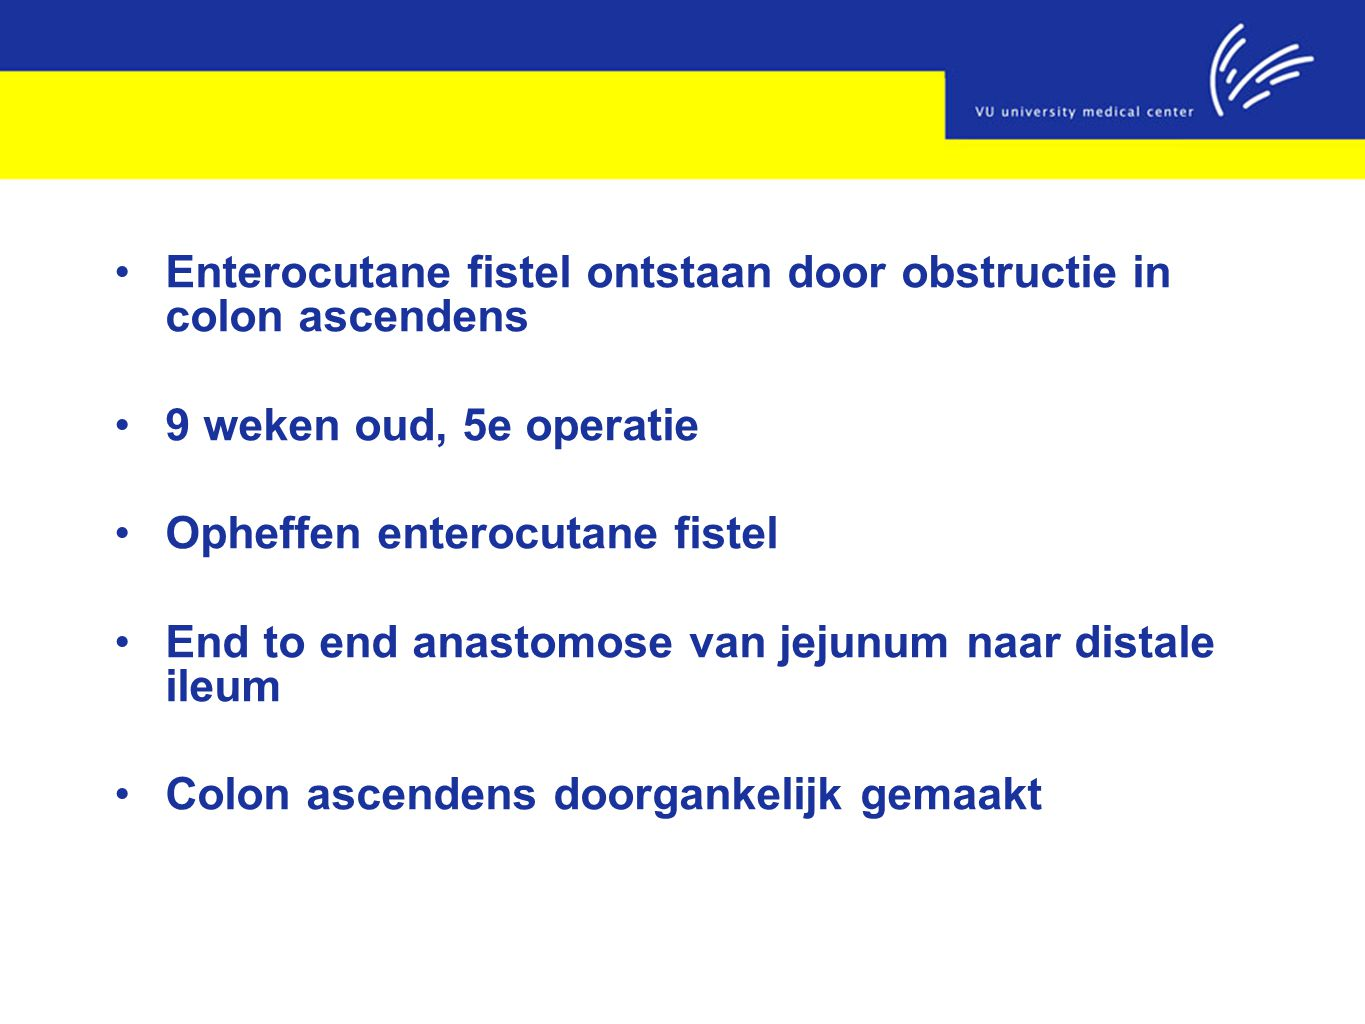 Enterocutane fistel ontstaan door obstructie in colon ascendens